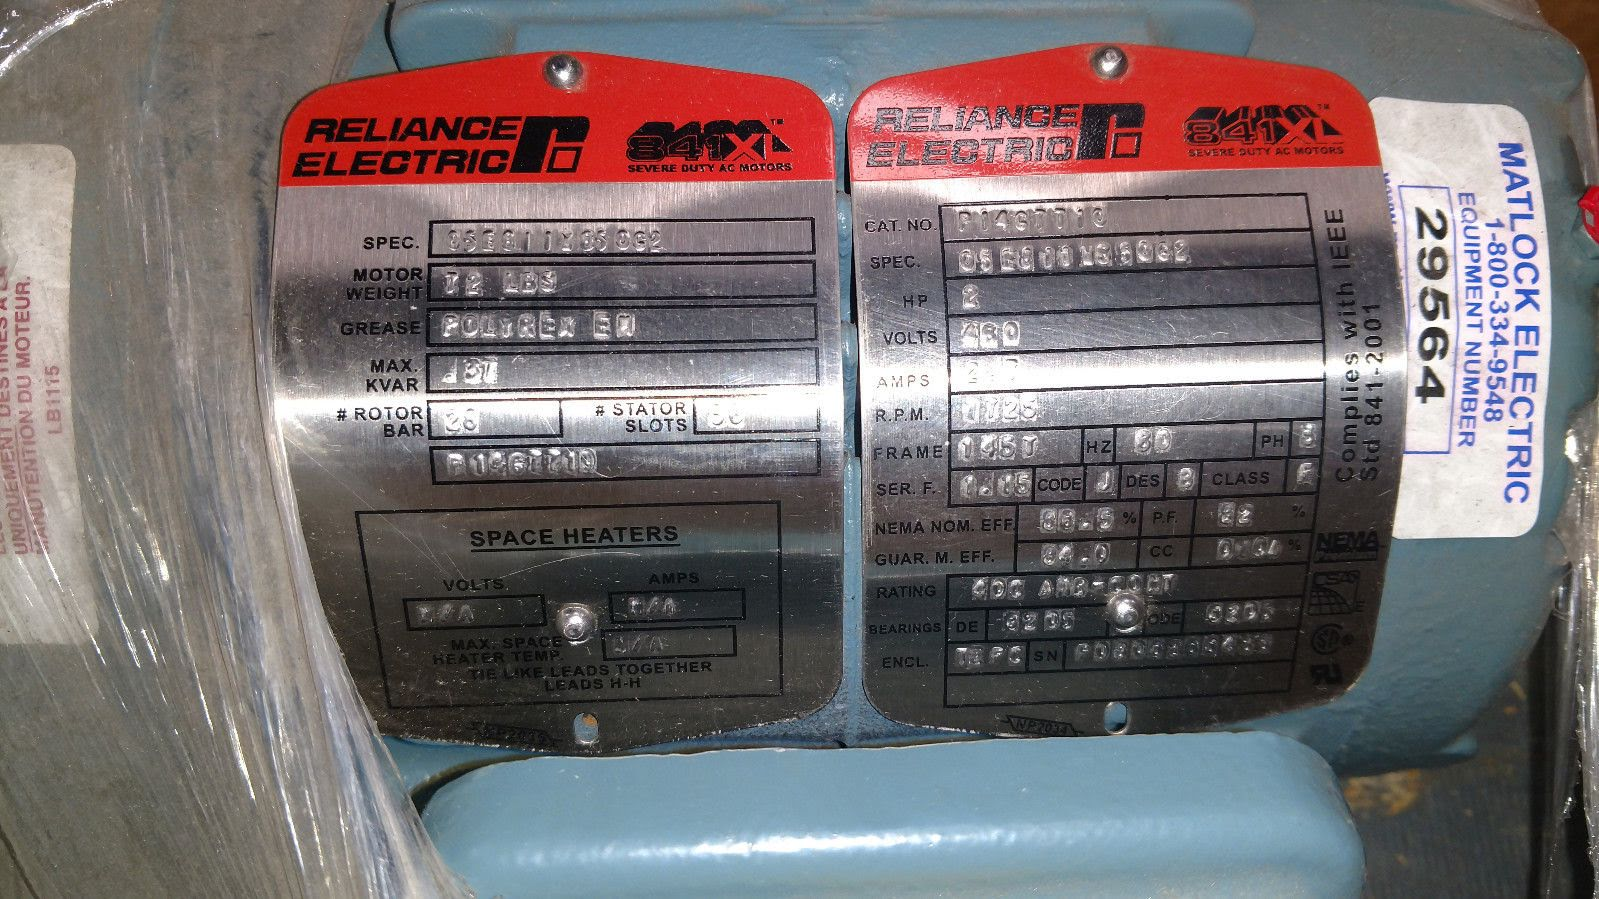 Lot 47 - (1) *NEW* Reliance Electric P14G7710 Severe Duty Motor 2HP 1725RPM 2.7AMP 460V *NEW*